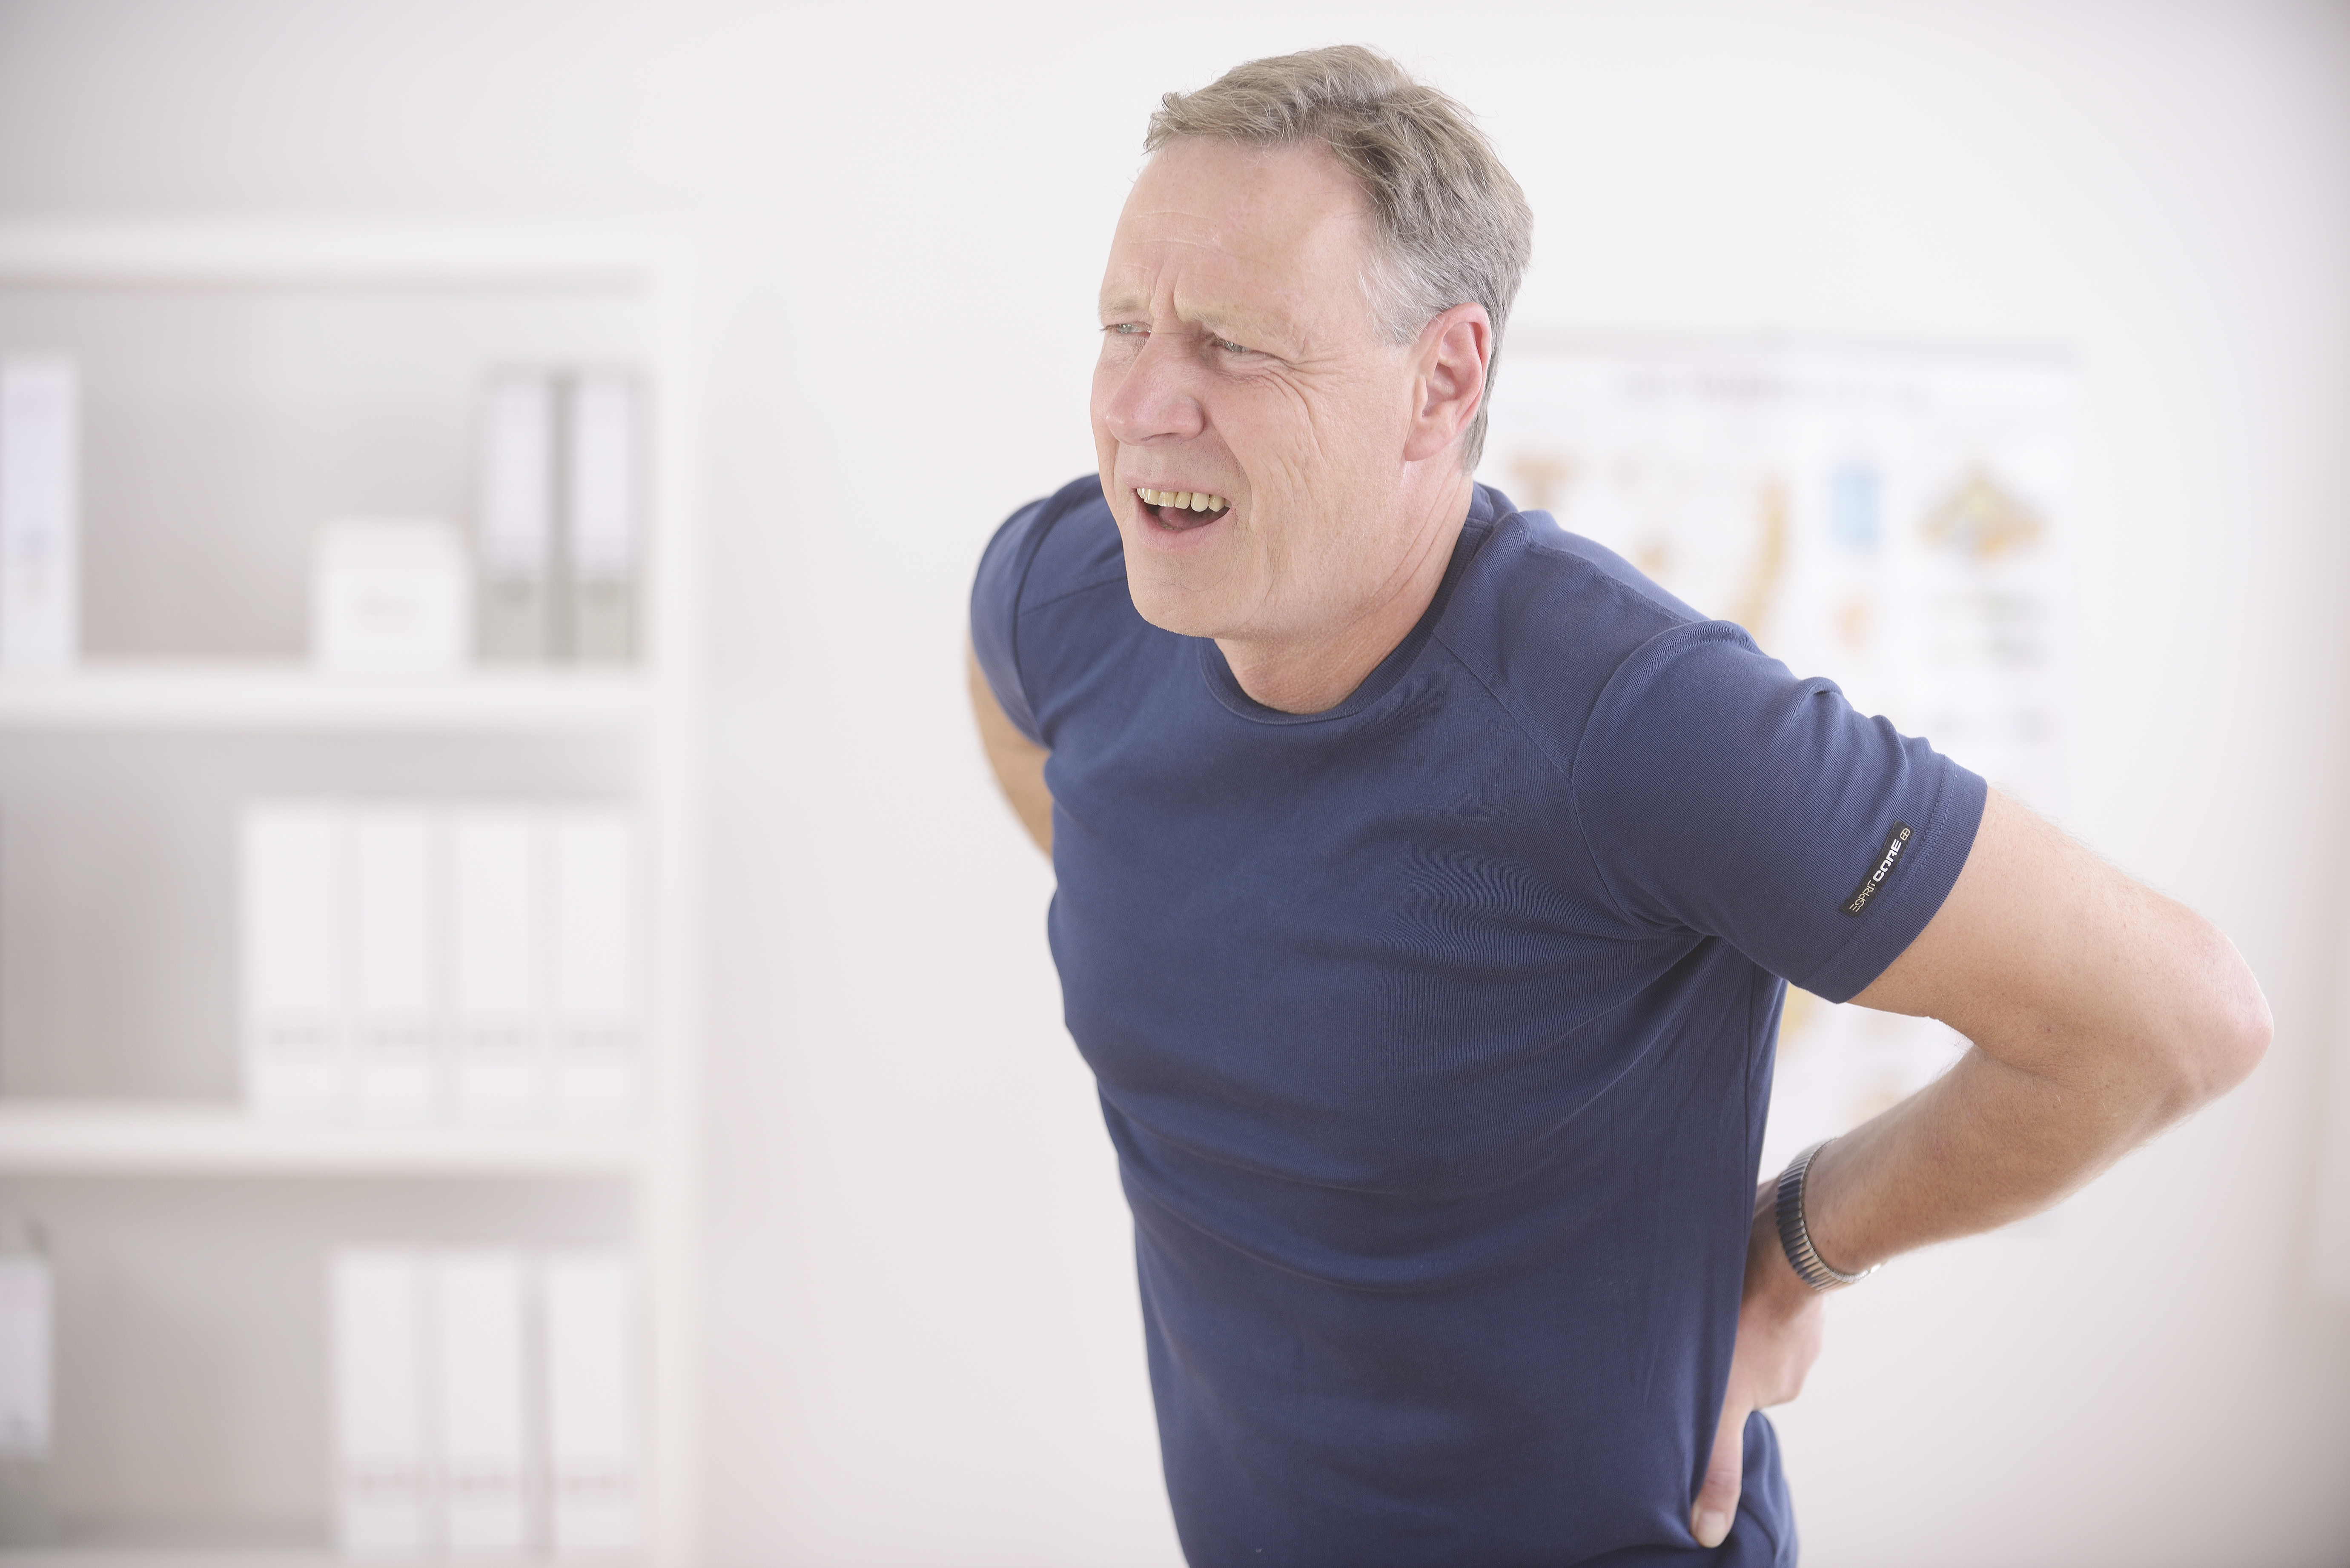 When do I need to see a doctor for back pain? Here are some warning signs when you need to see a doctor for back pain. Learn more about some serious conditions of back pain such as problems with your bowels or bladder, deformity of the spine etc. Read More!